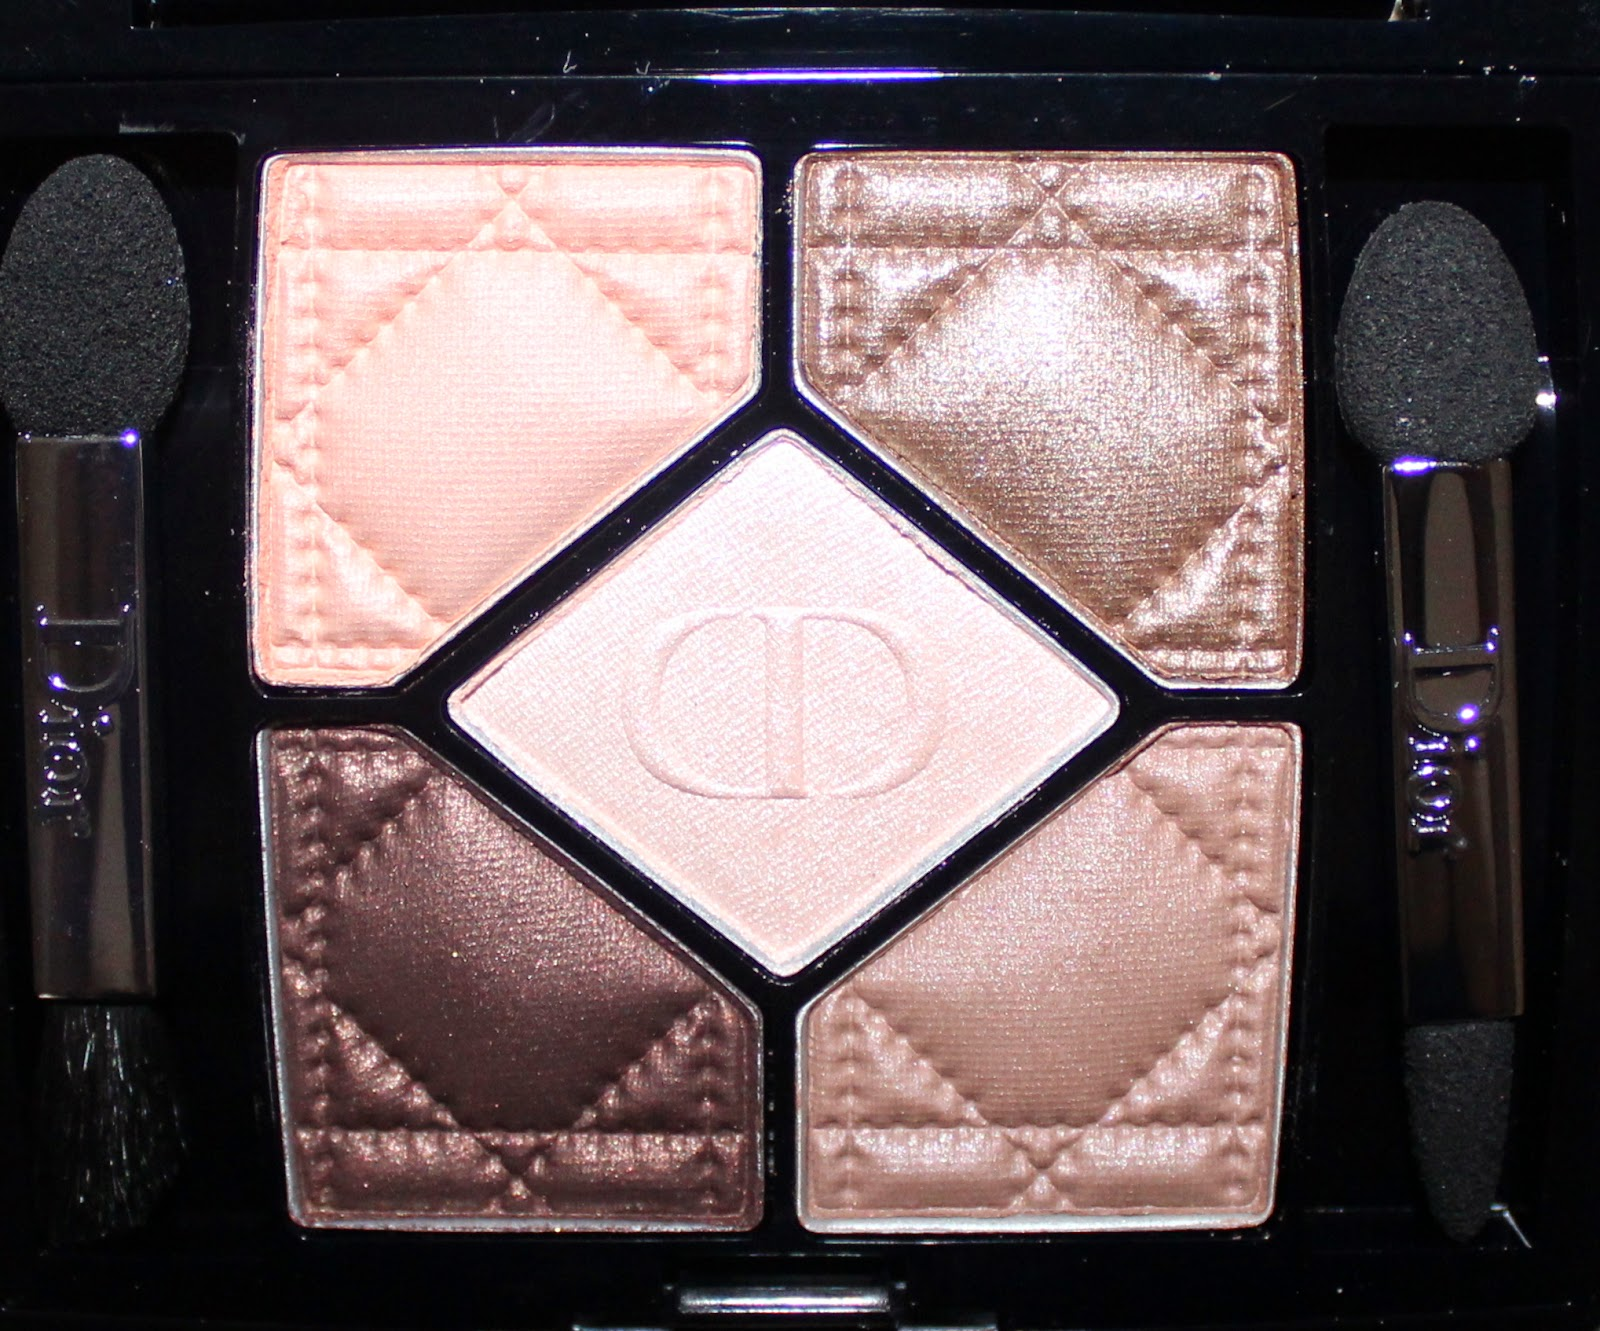 Dior 5 Couleurs Eyeshadow Palette in Ambre Nuit